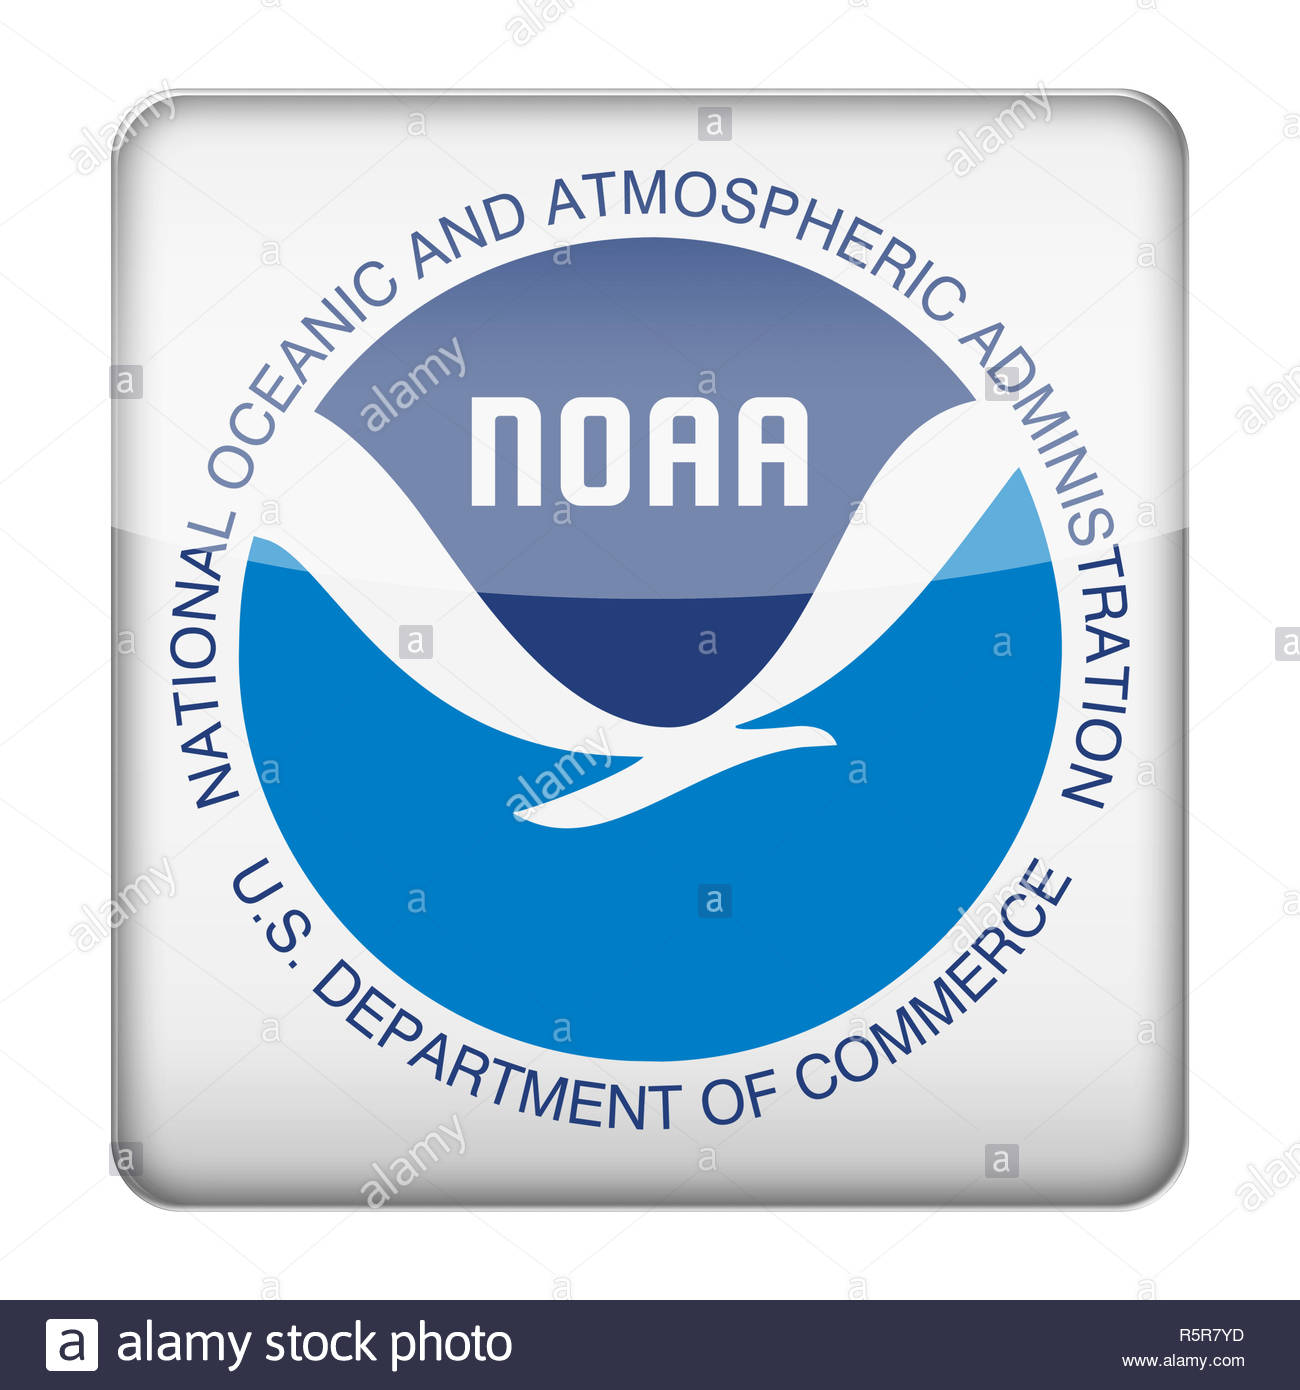 National Oceanic and Atmospheric Administration logo - Stock Image